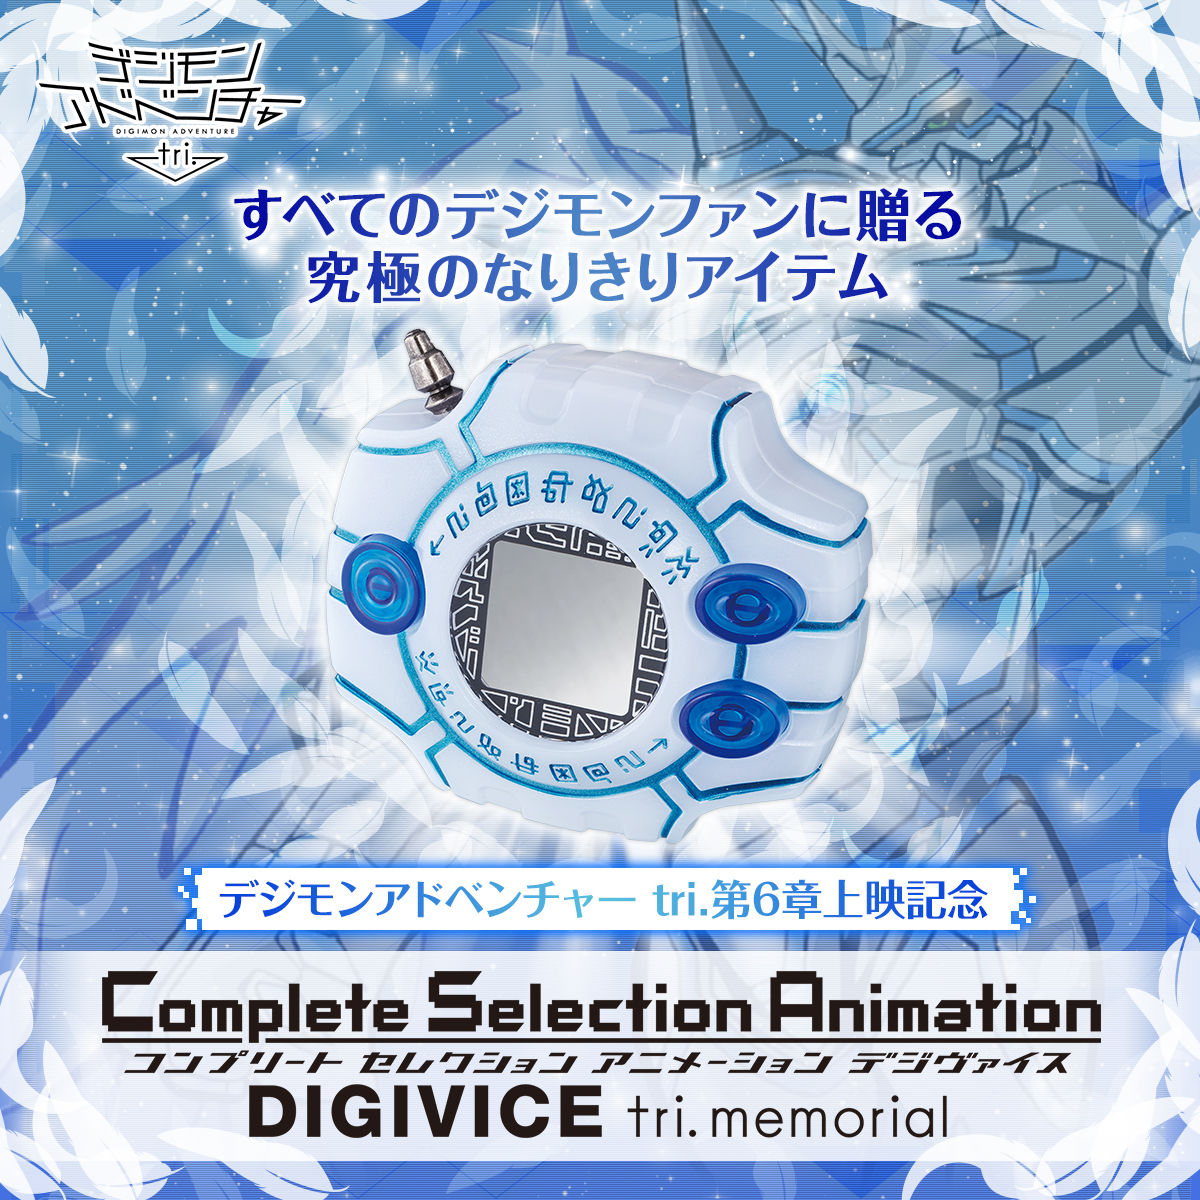 デジモンアドベンチャー tri.第6章上映記念 Complete Selection Animation DIGIVICE tri.memorial